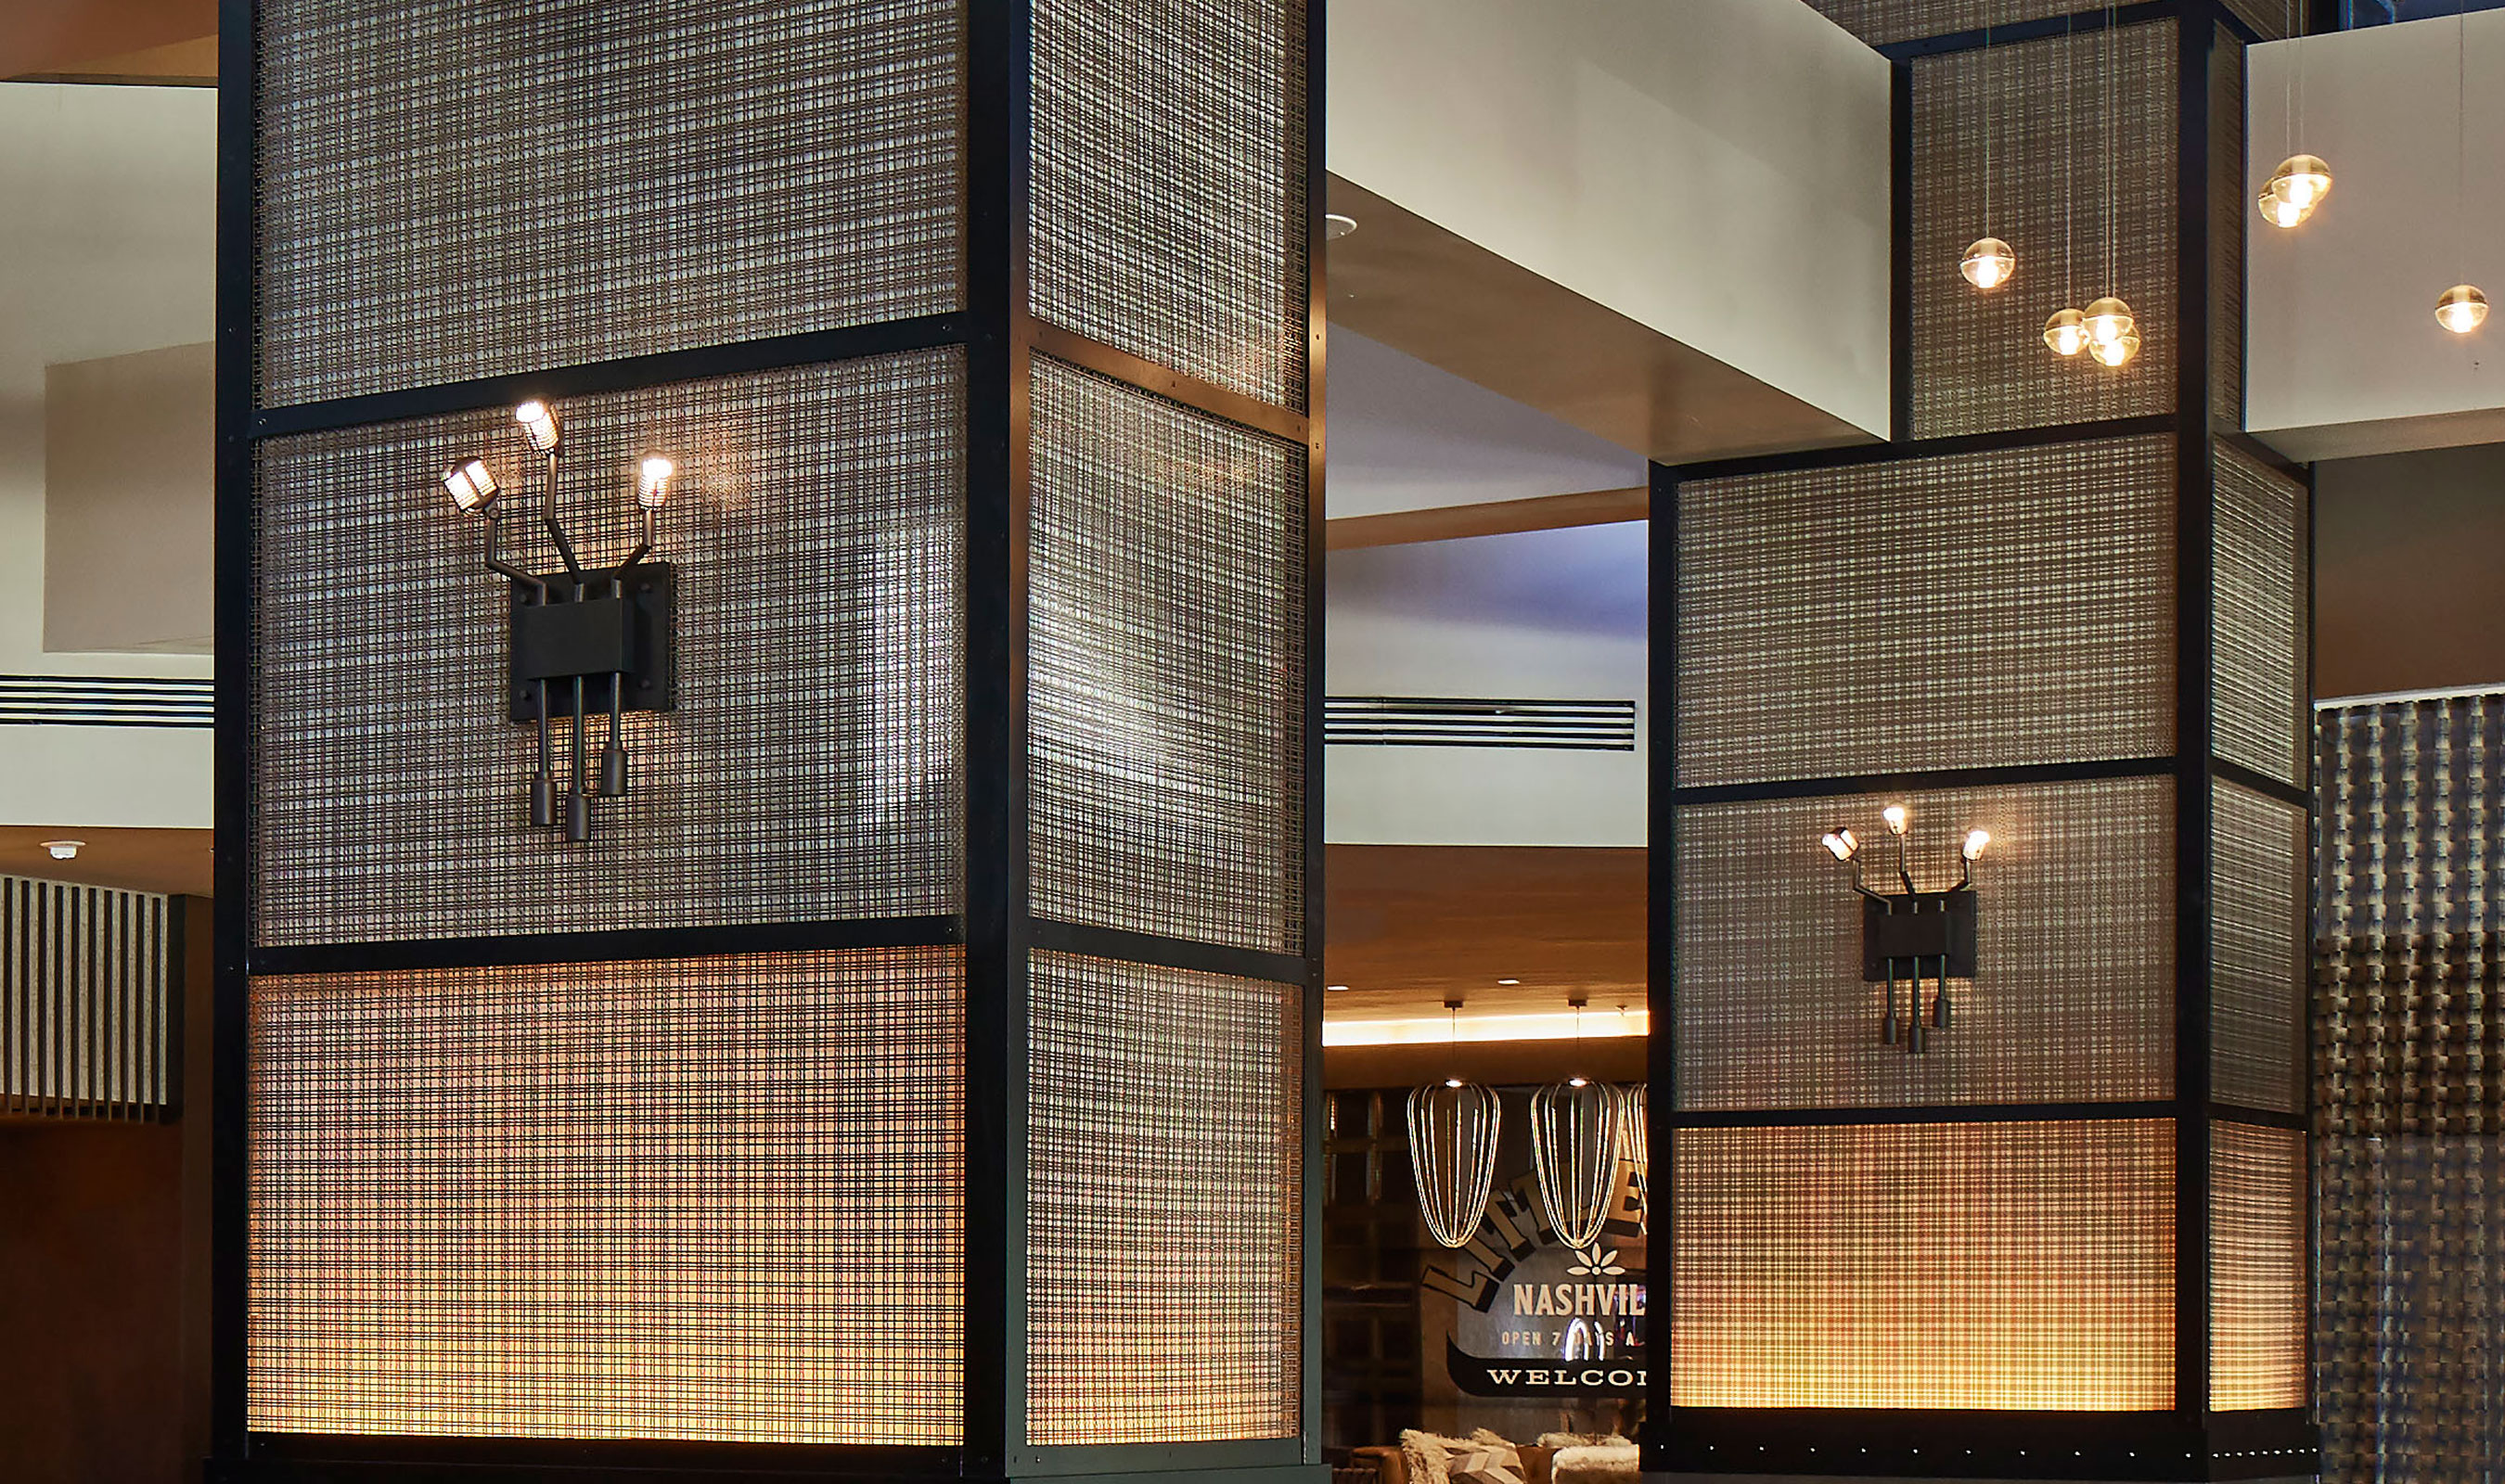 Banker Wire's SJD-21 creates interesting patterns as it is backlit on columns in the lobby.